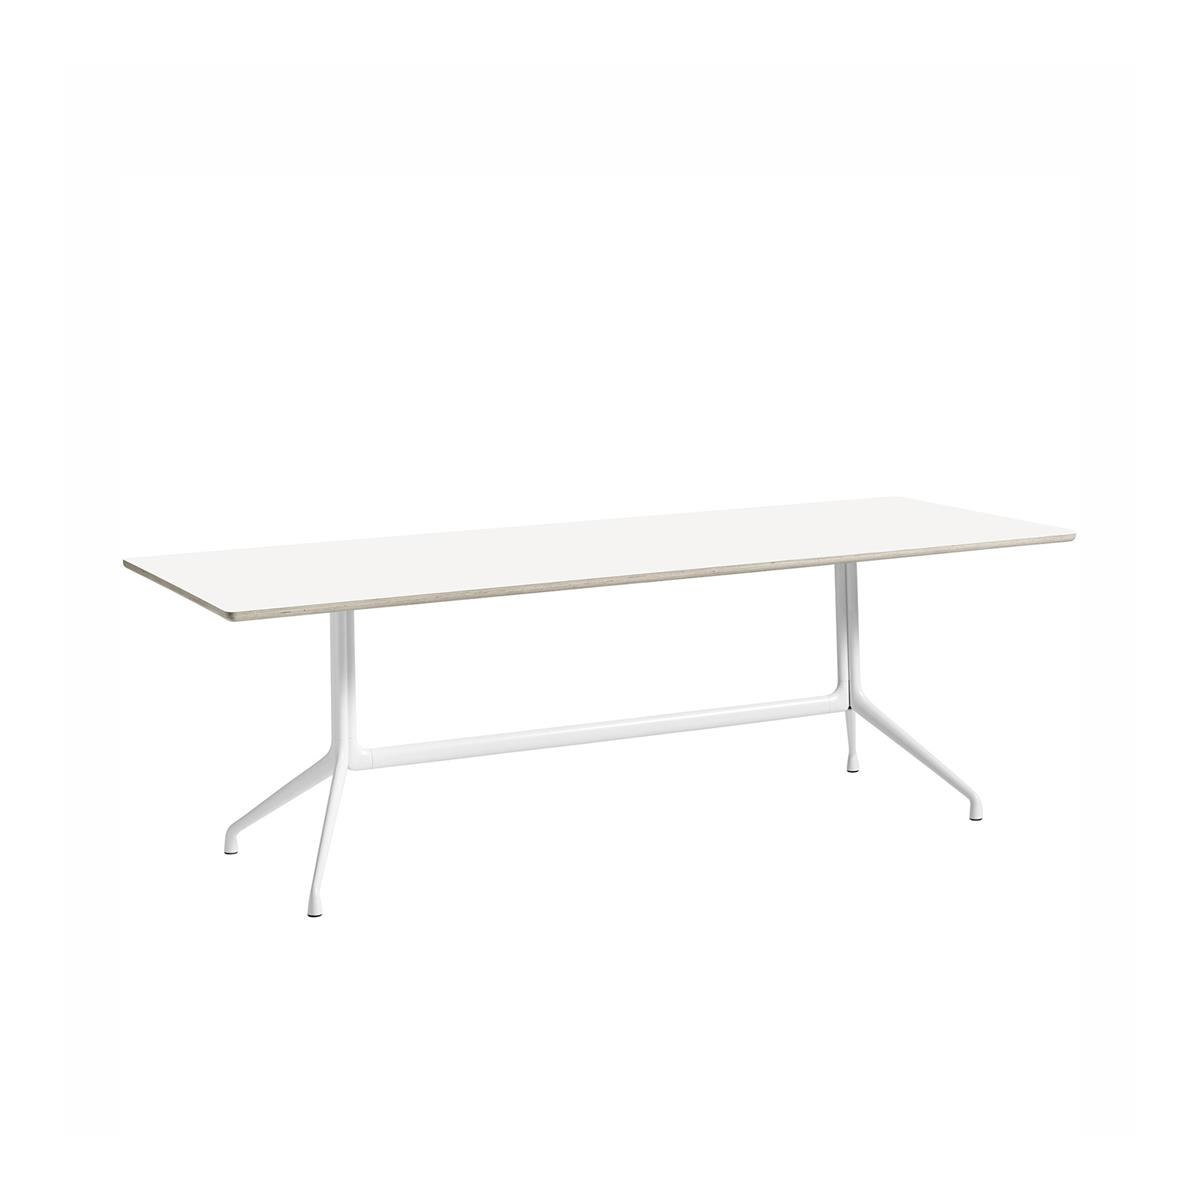 About A Table 220x105 - hvit HPL & hvit